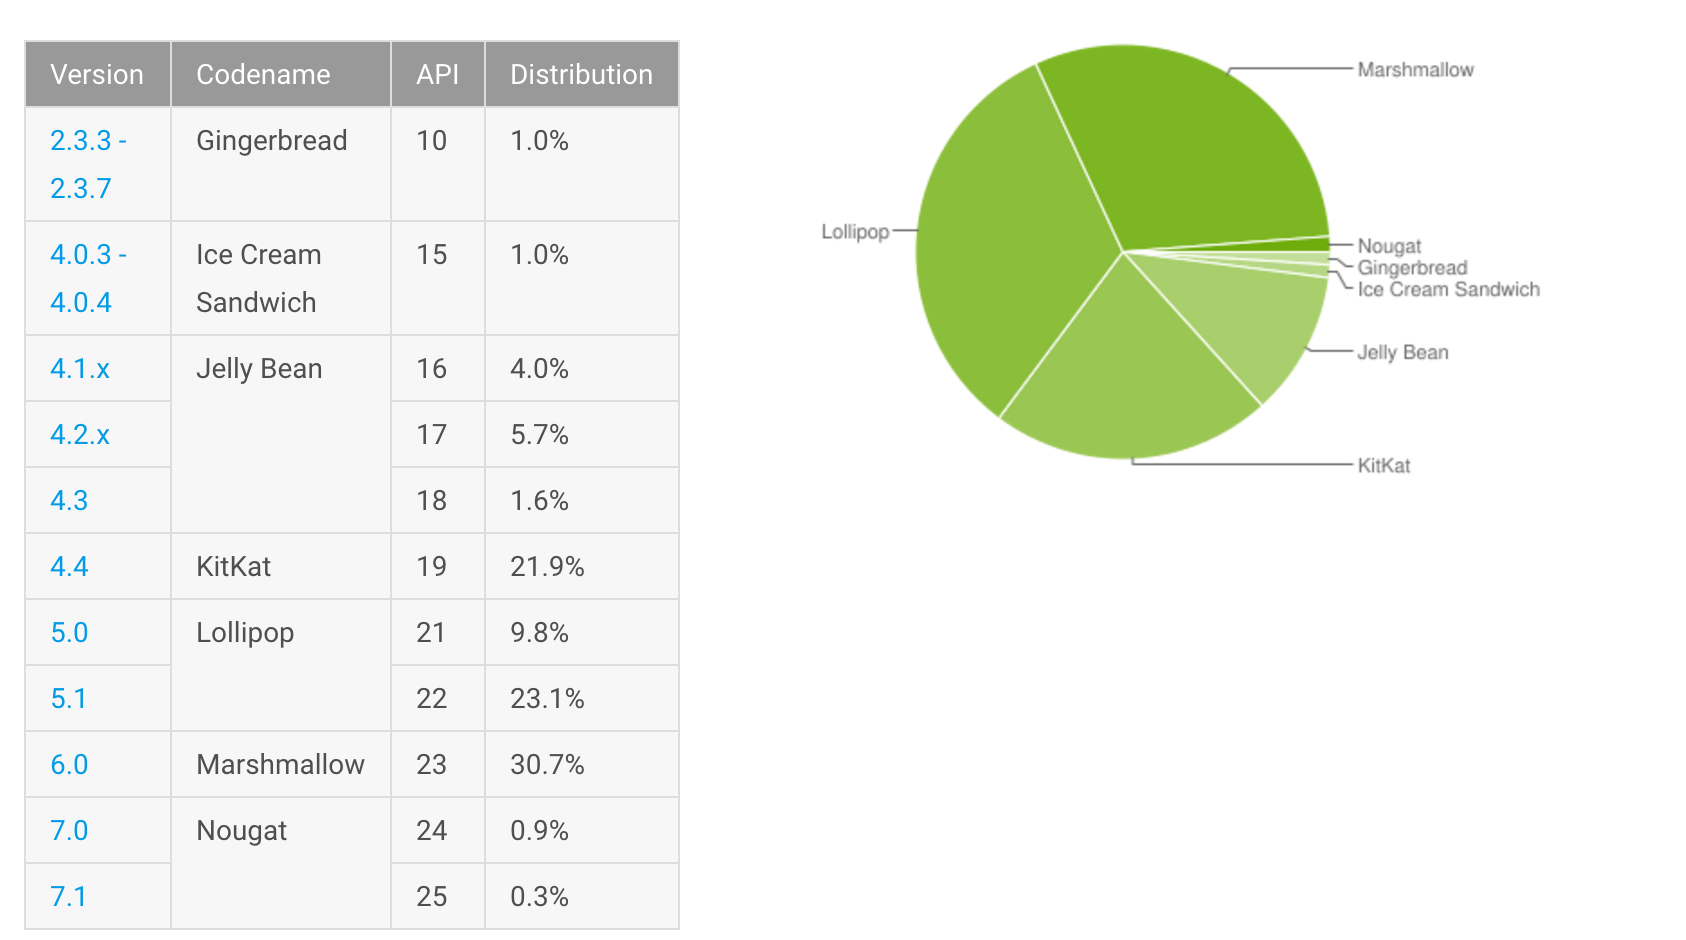 February Android distribution numbers